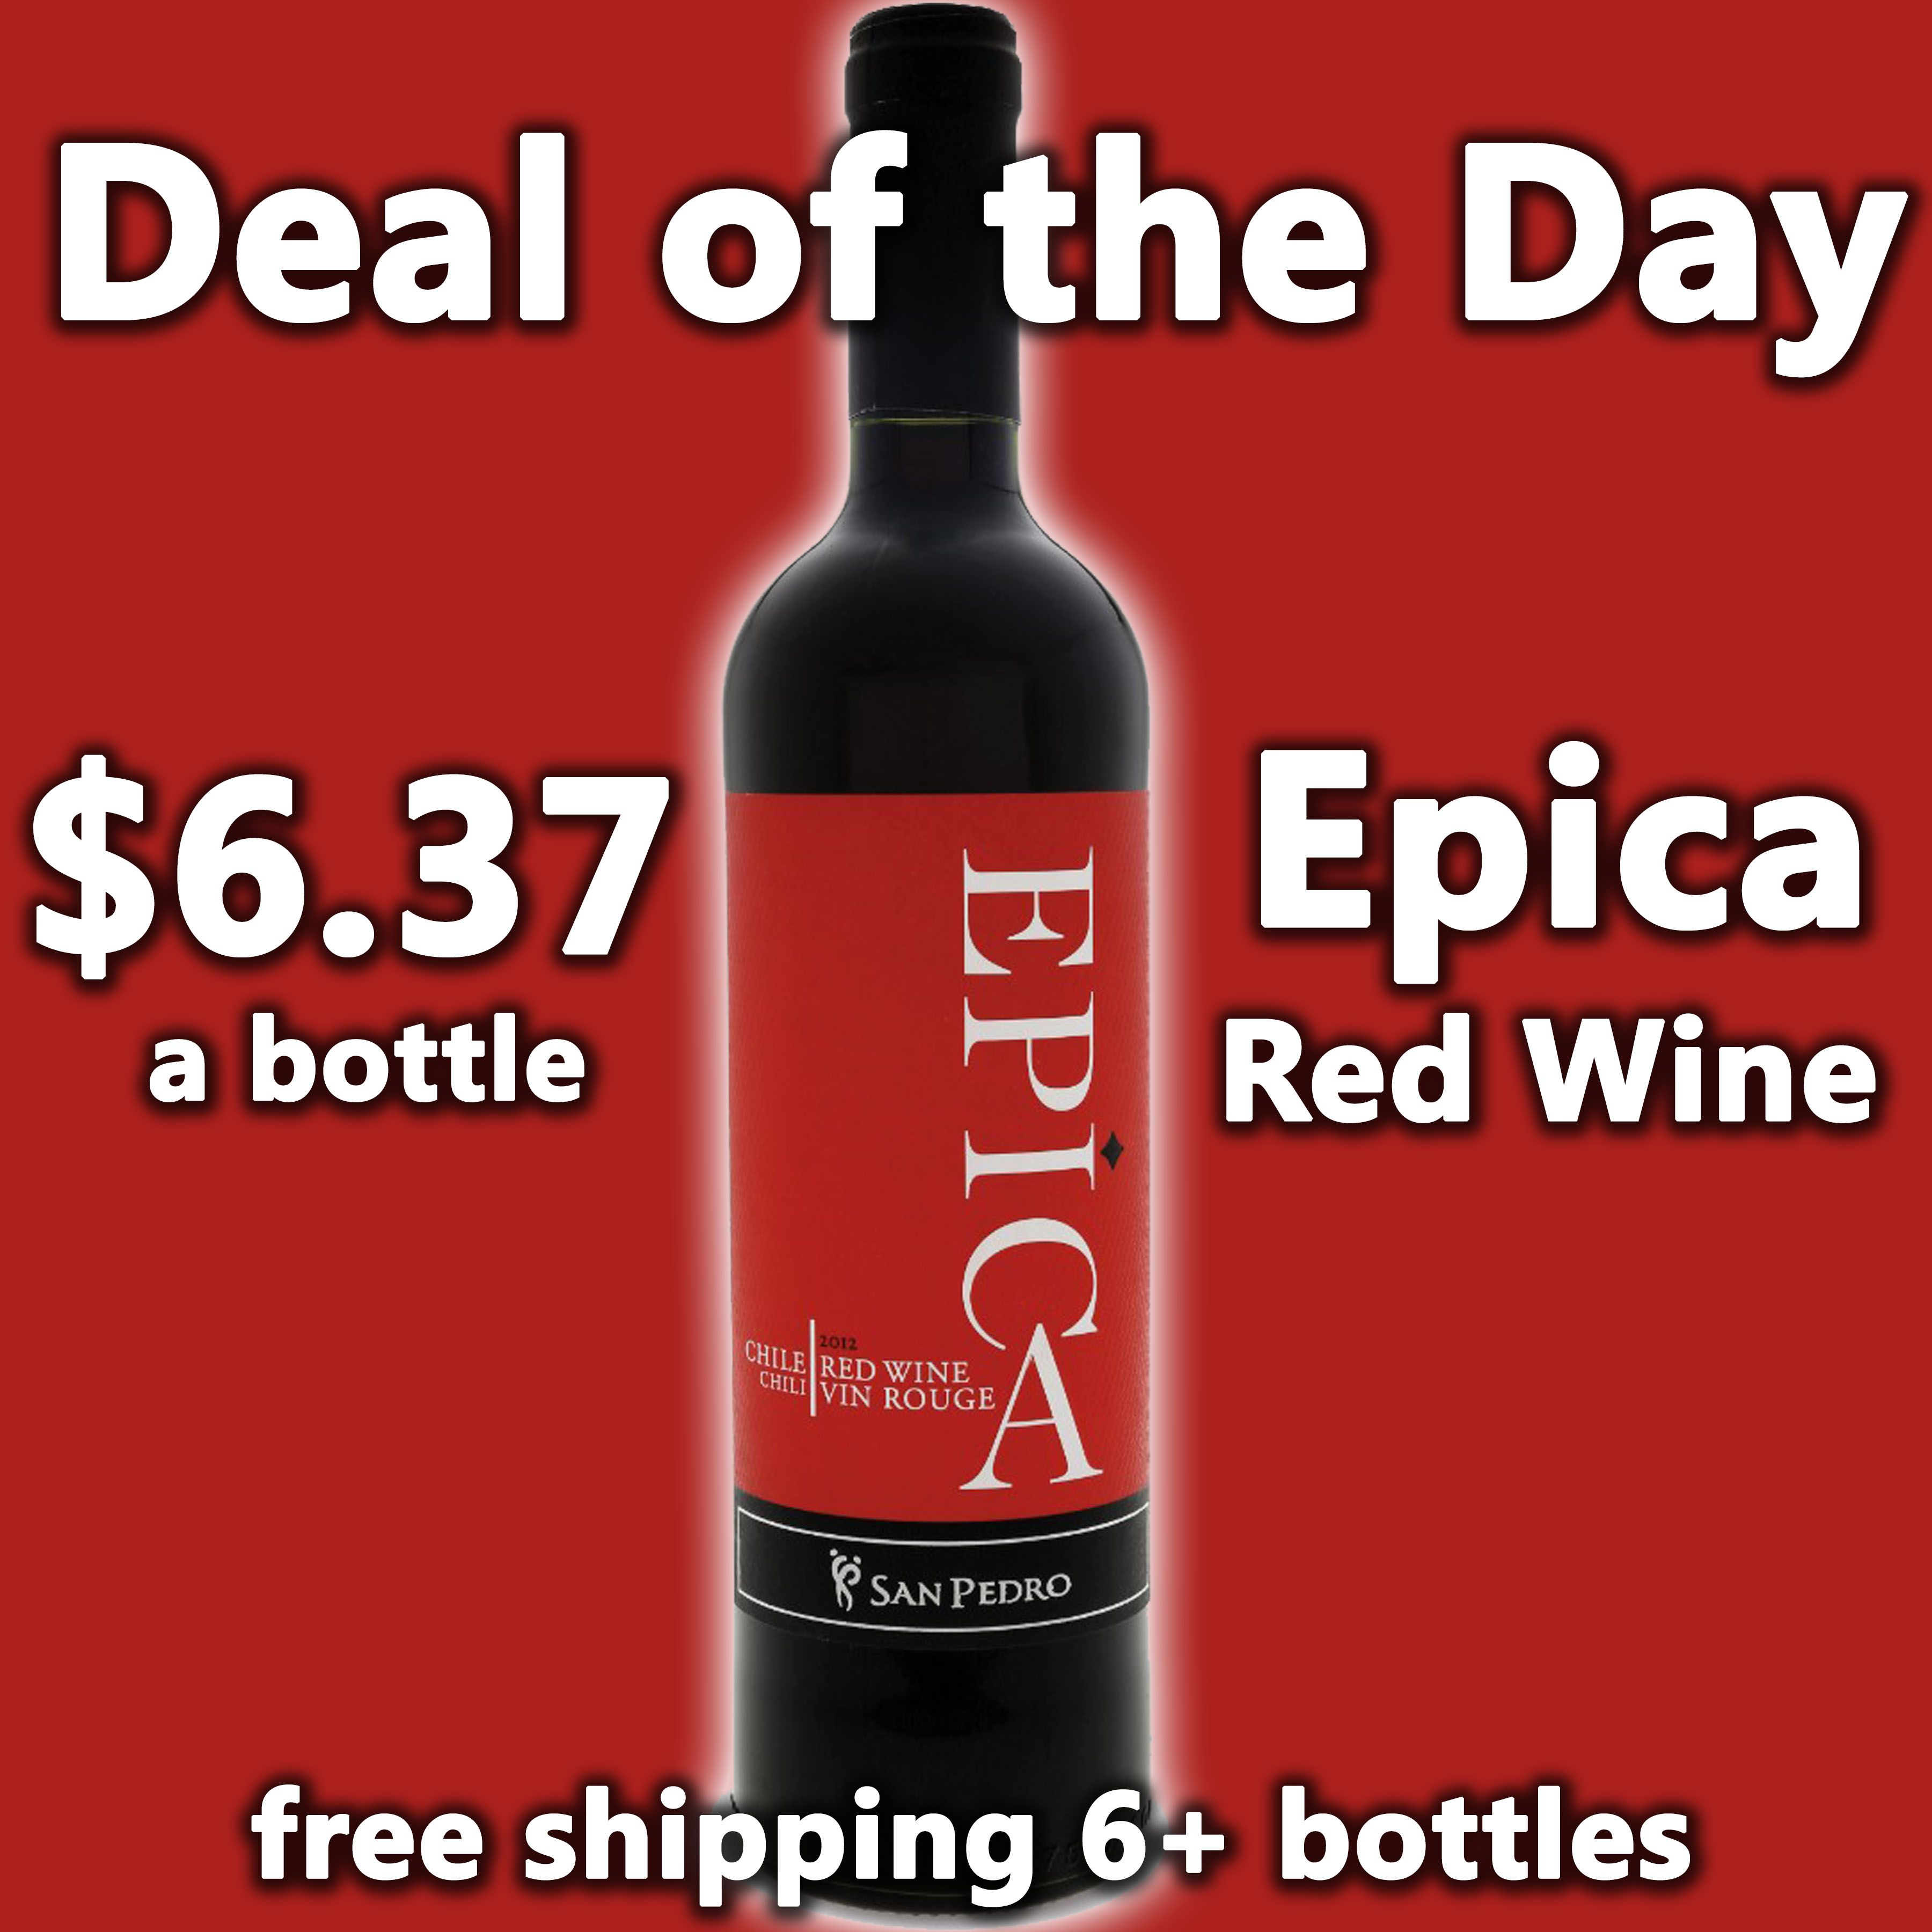 Deal Of The Day San Pedro Epica Red Wine 6 37 A Bottle Free Shipping On 6 Bottles The Combination Of Three Different Gra Red Wine Online Wine Store Bottle